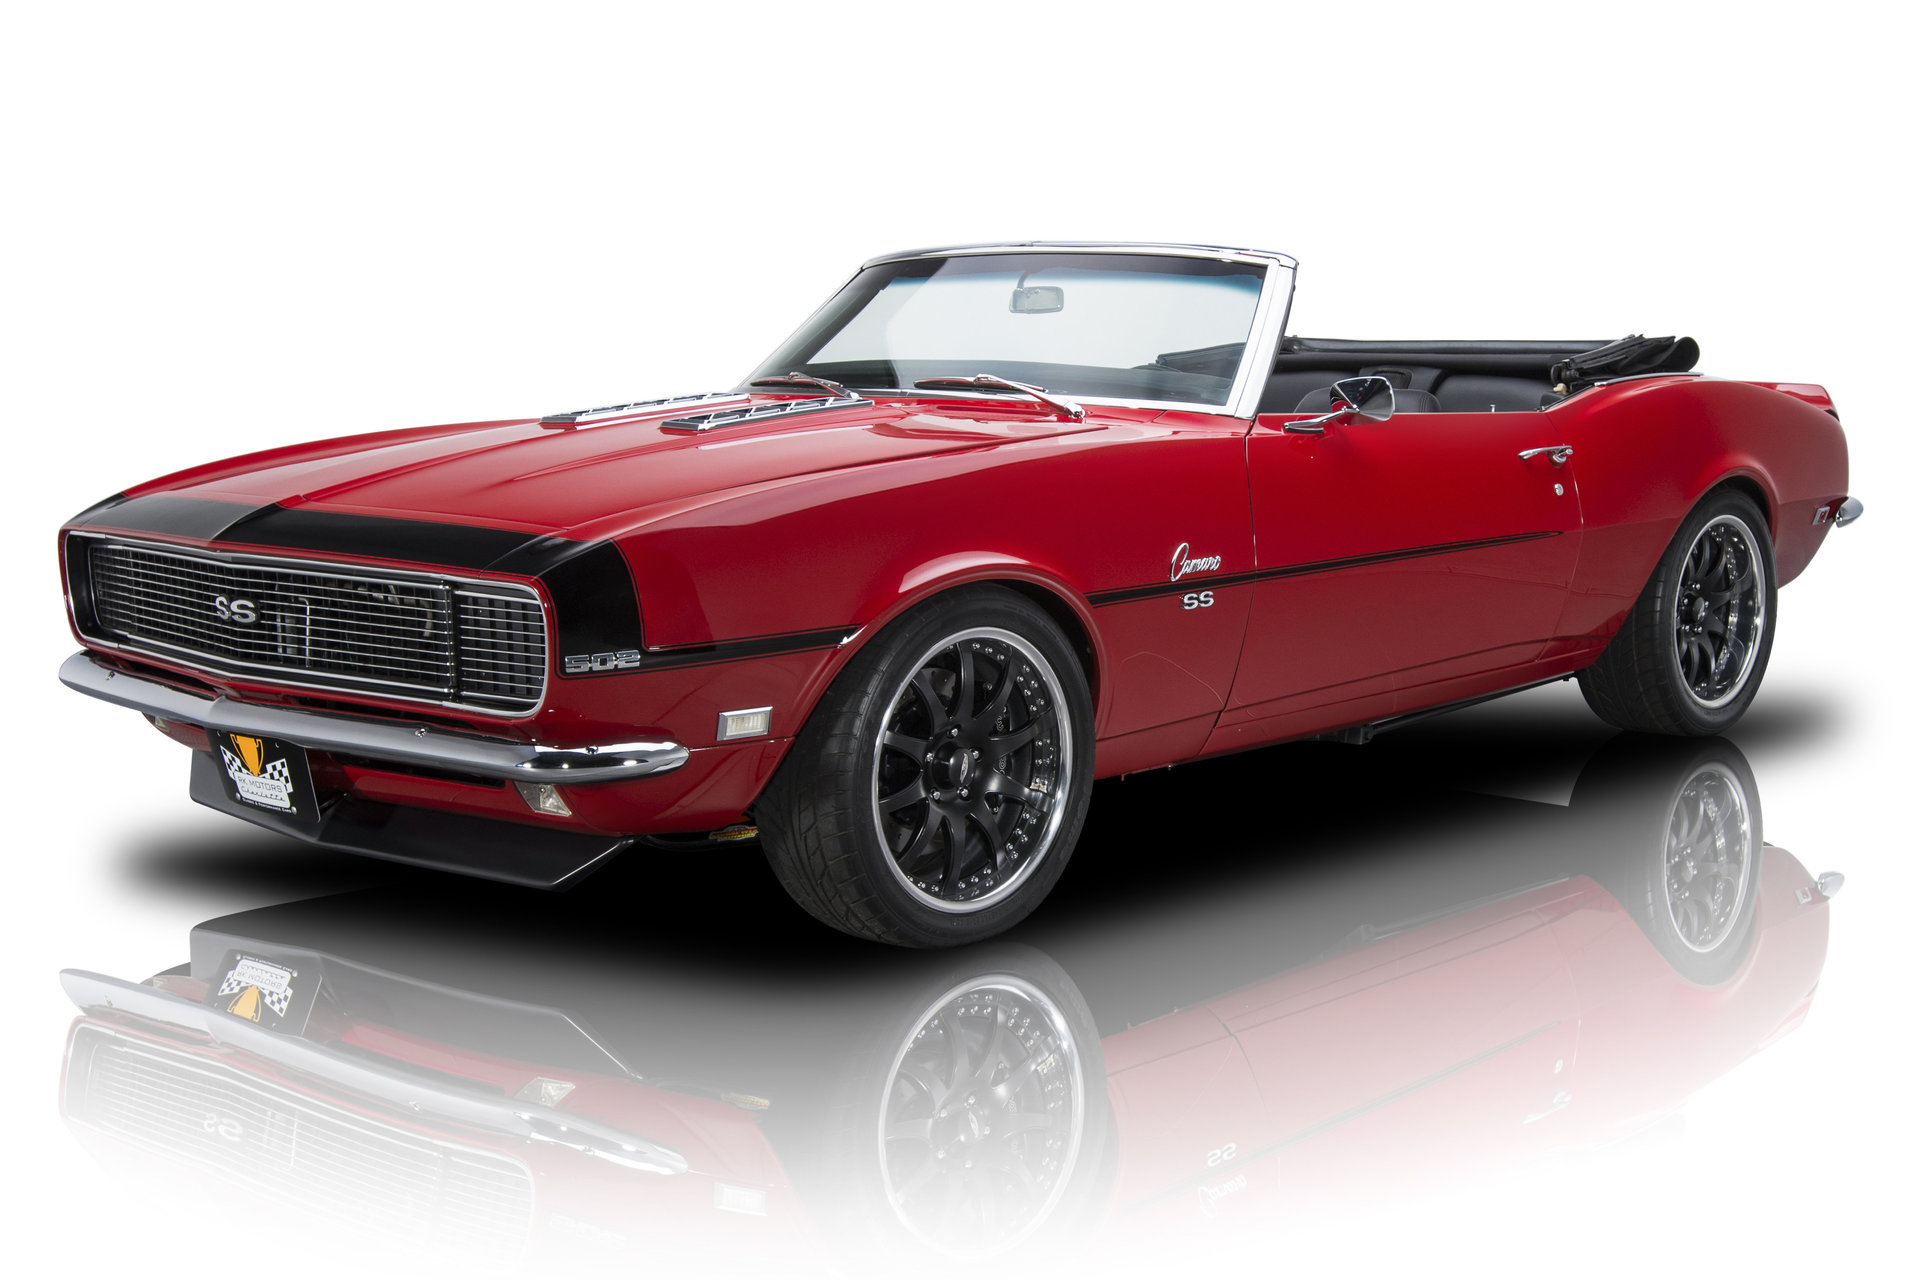 136120 1968 Chevrolet Camaro Rk Motors Classic And Performance Convertible 4001737bb64d03 Hd